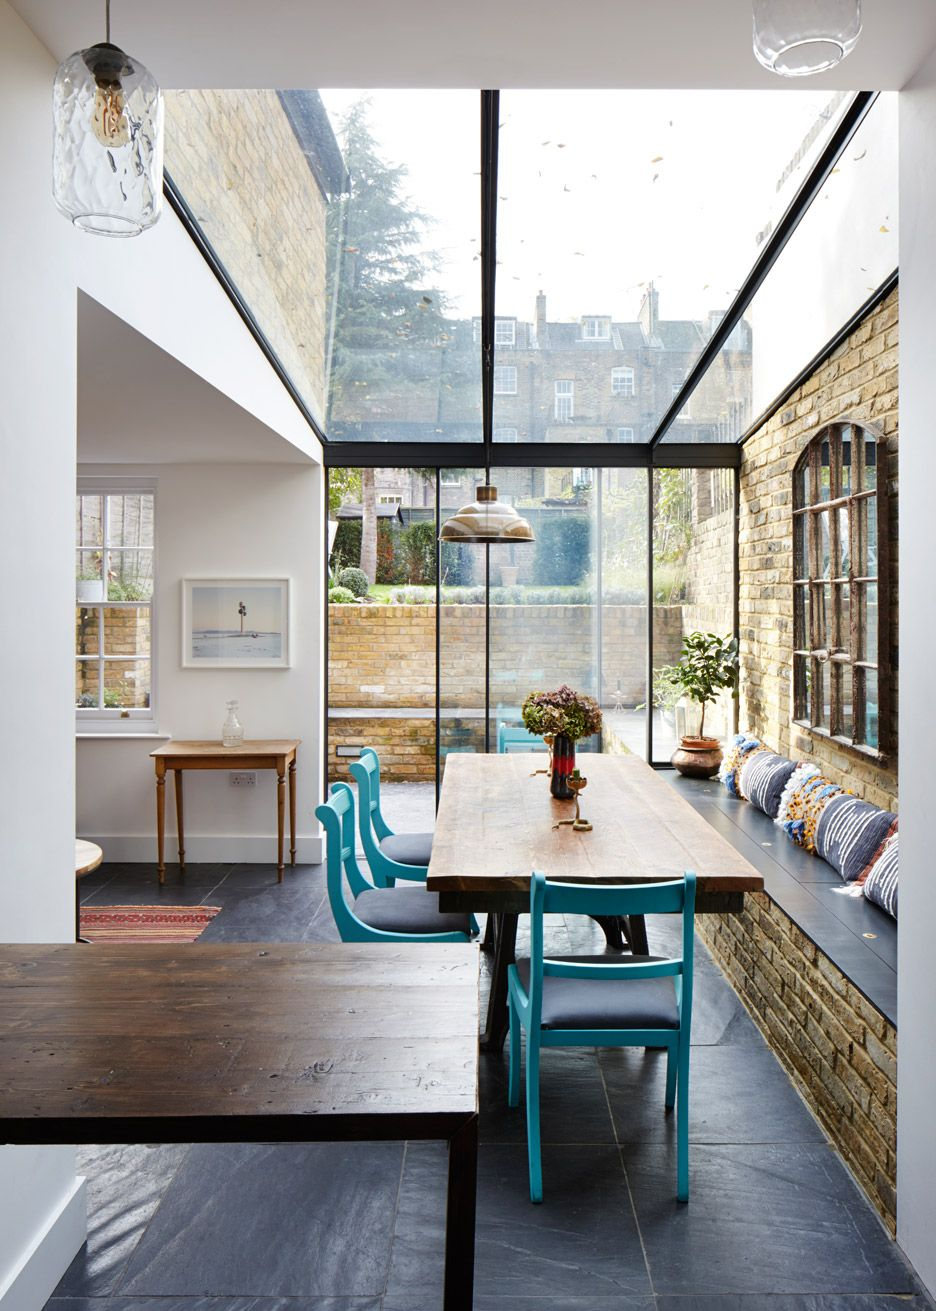 H T Adds Jewel Like Glass Extension To East London House